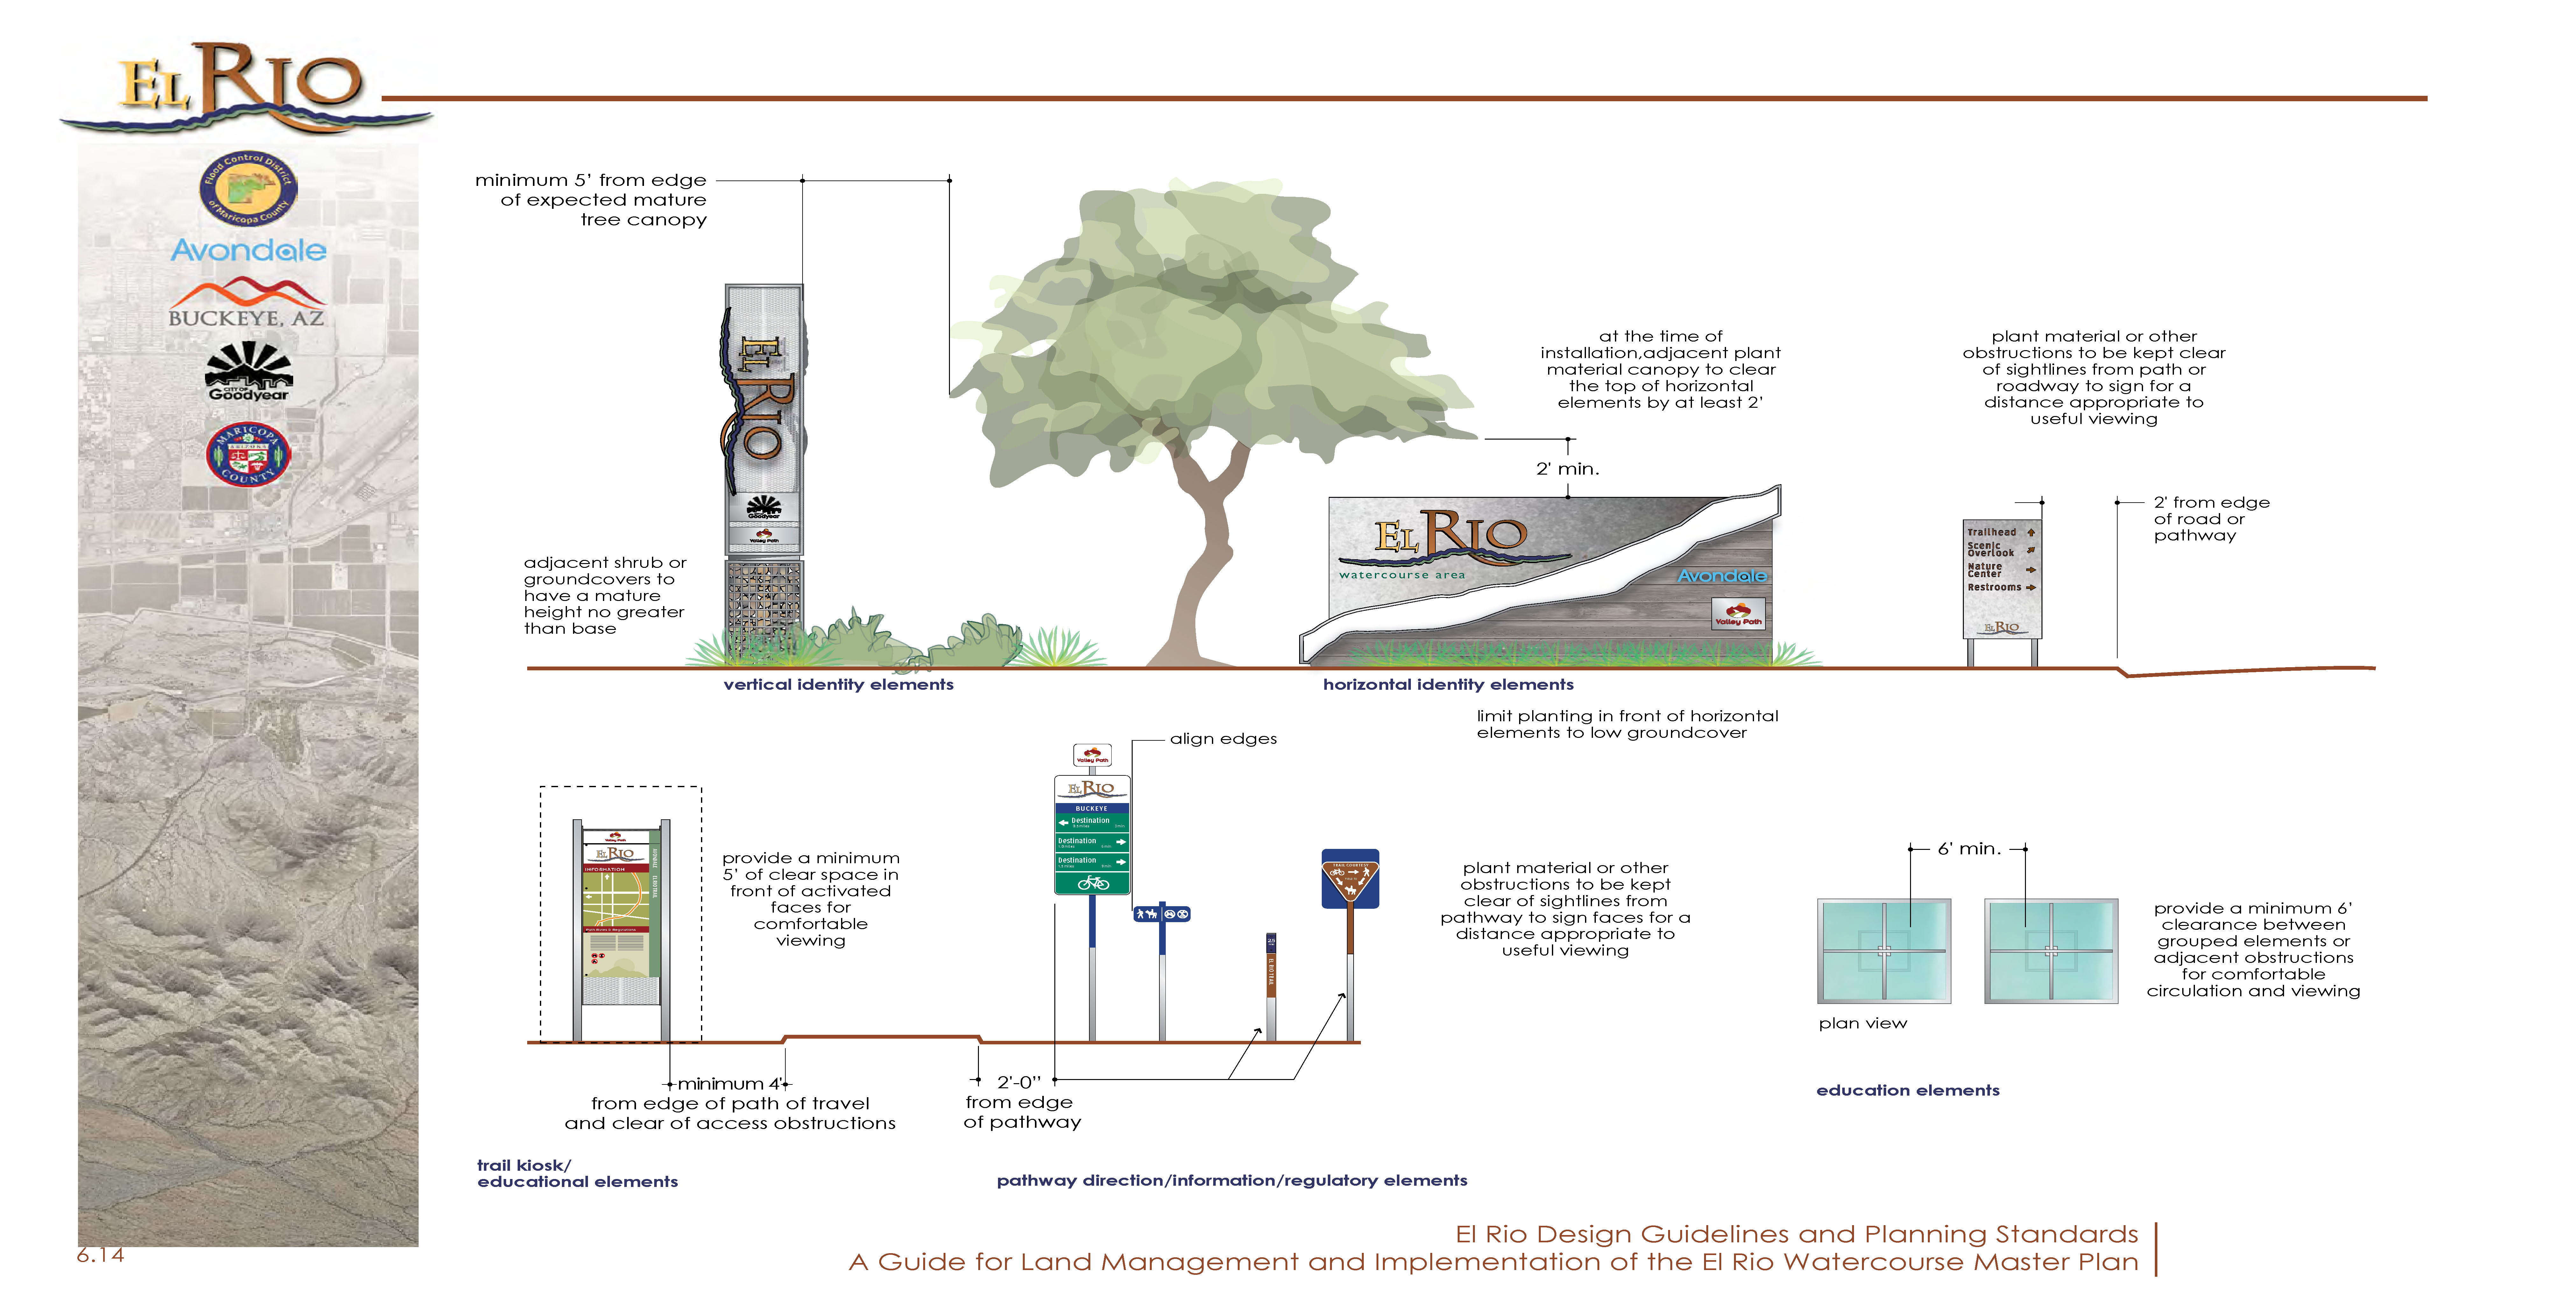 Final-El-Rio-Design-Guidelines-and-Planning-Standards-Report-2015_12_22a_Page_097